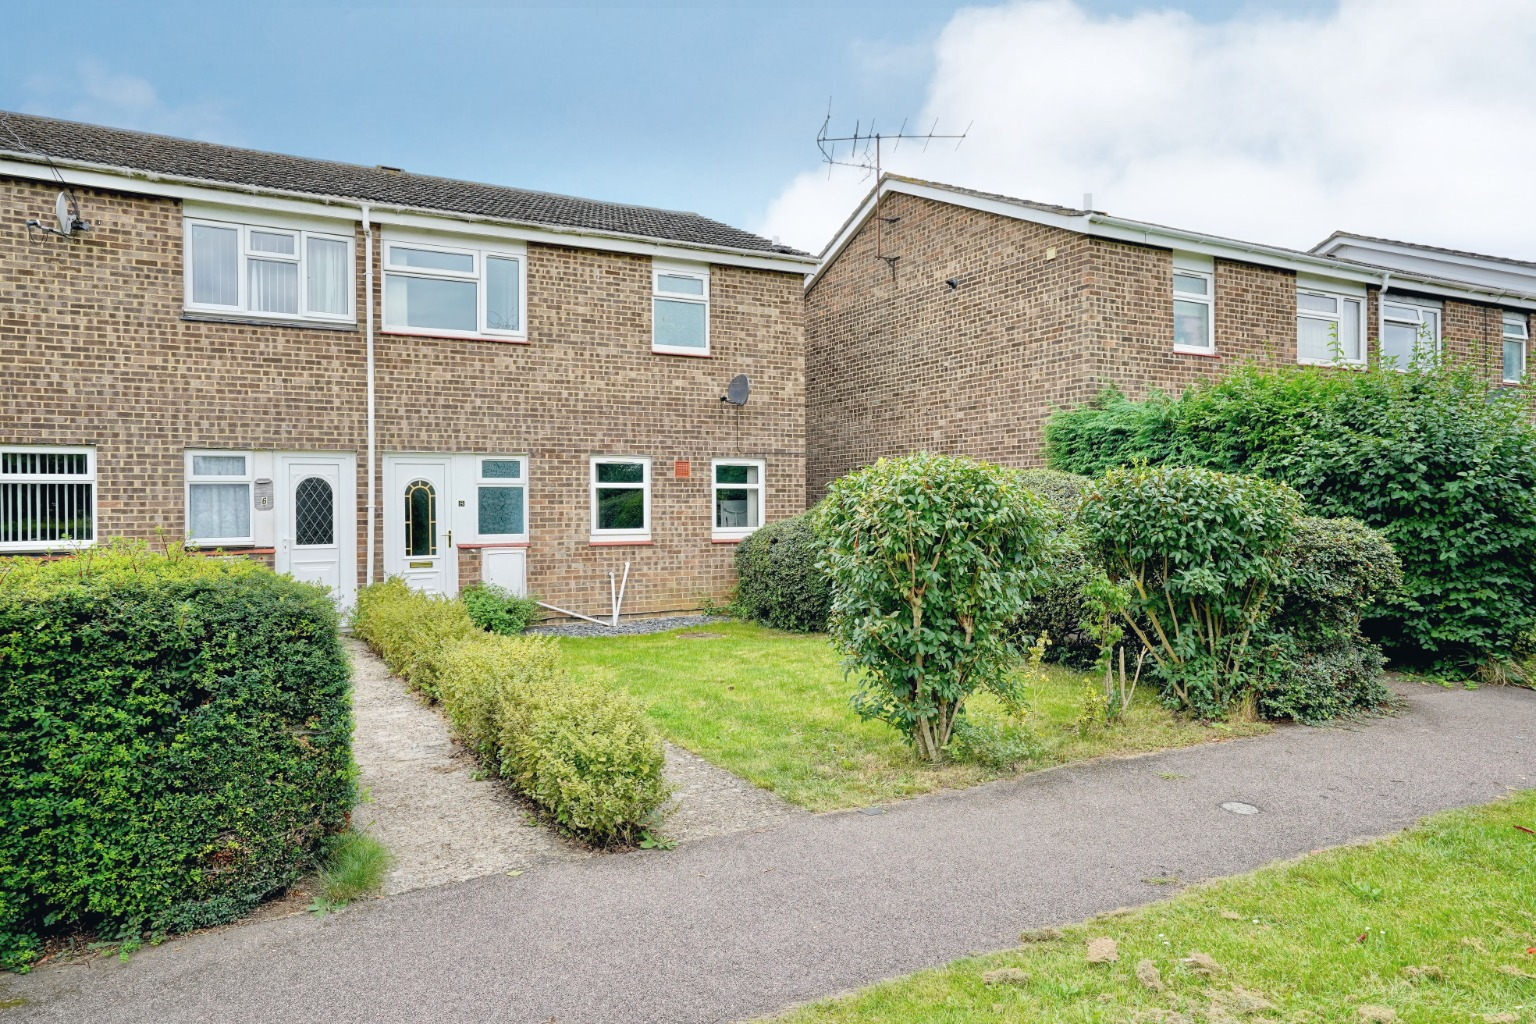 3 bed end of terrace house for sale in Marquis Close, St. Neots - Property Image 1